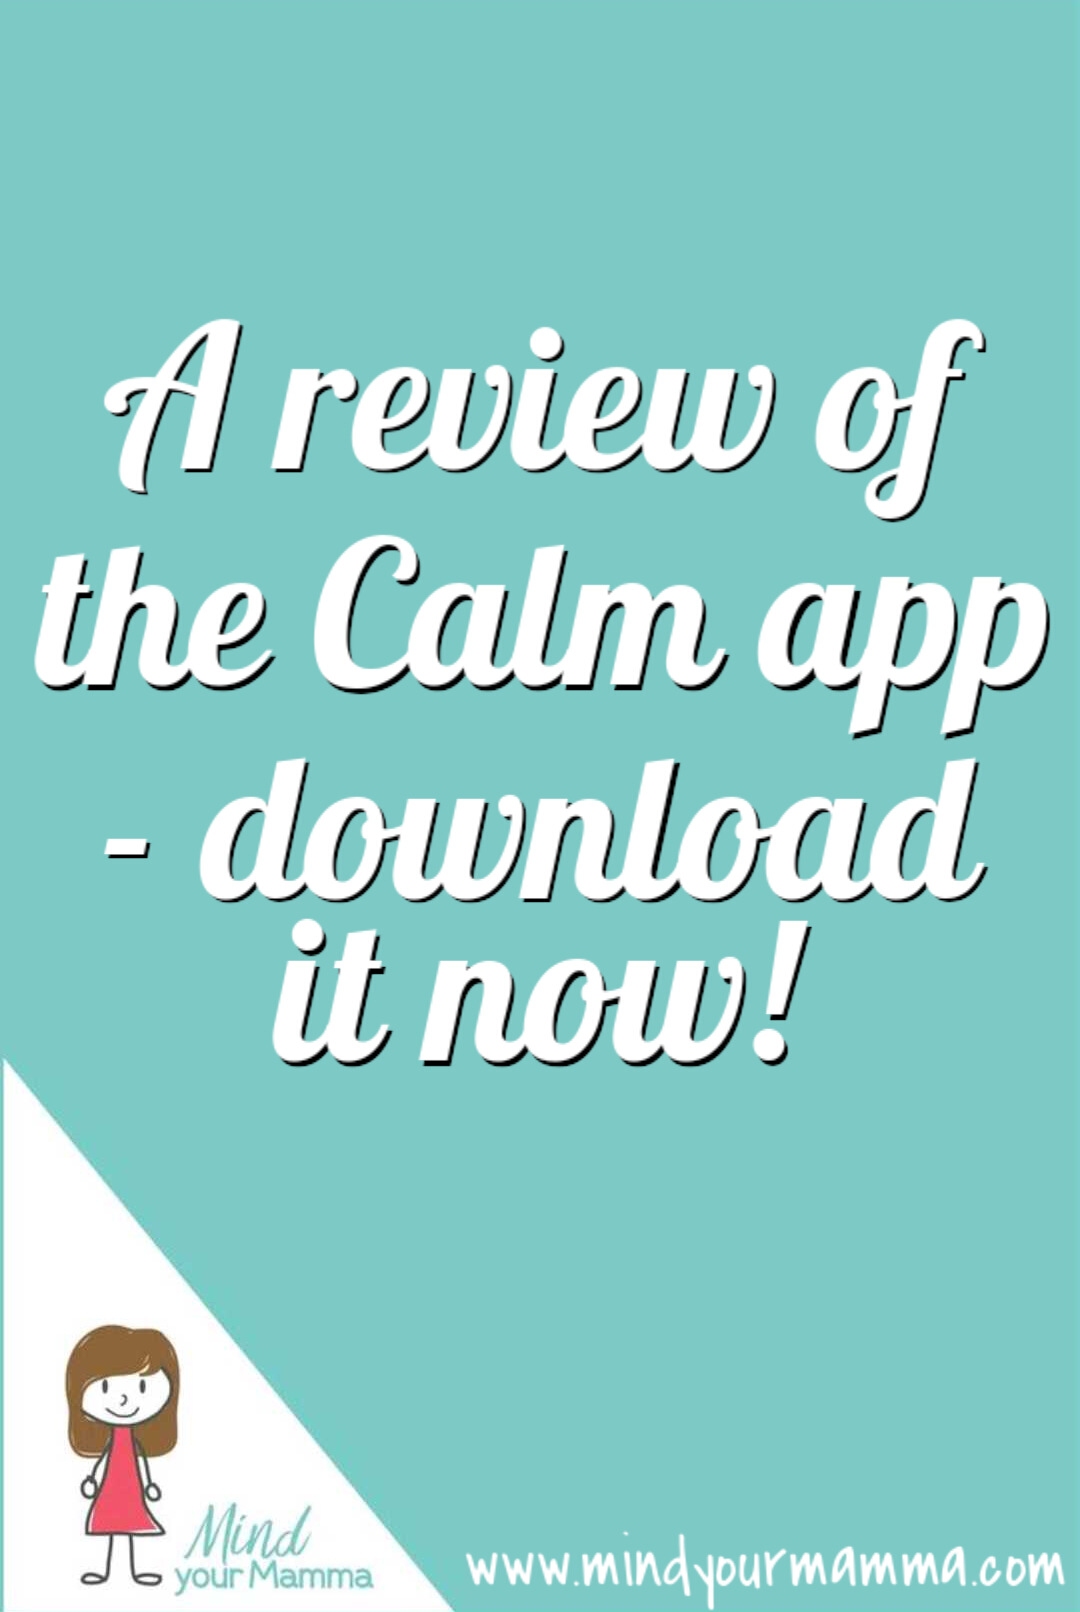 A review of the Calm app for mindfulness meditation. Download it now! Mind your Mamma